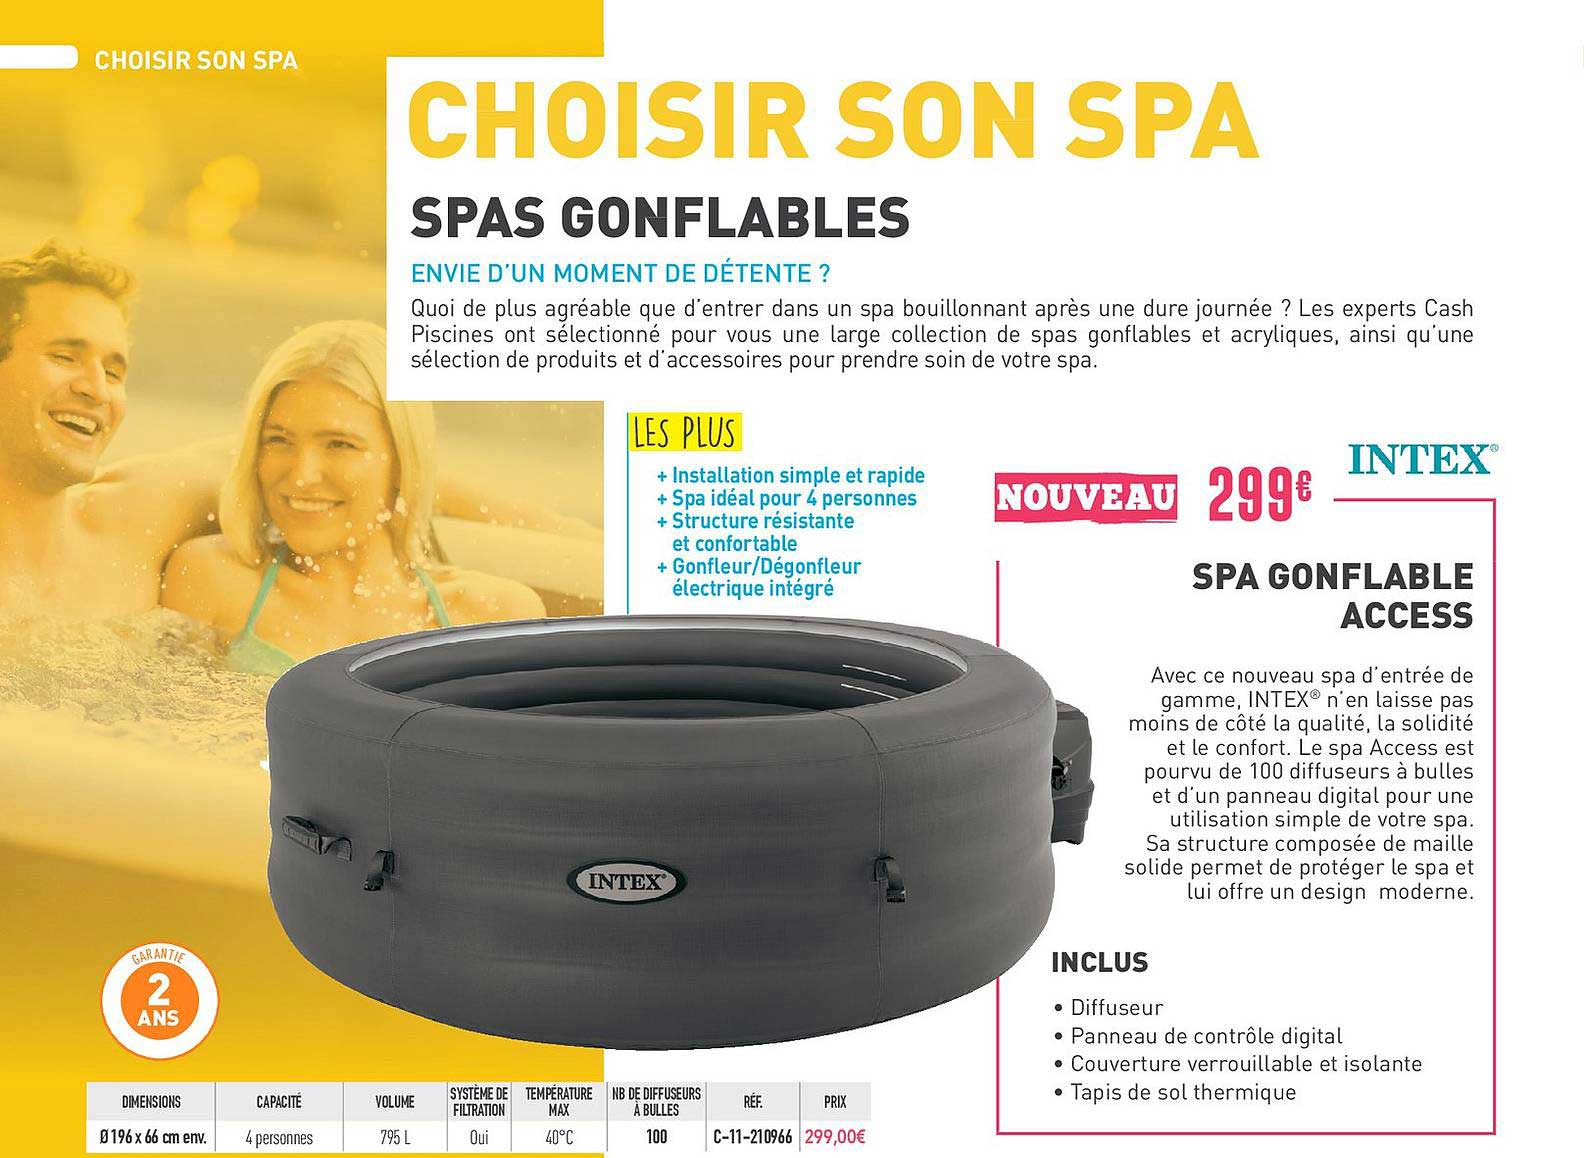 Cash Piscines Spa Gonflable Access Intex